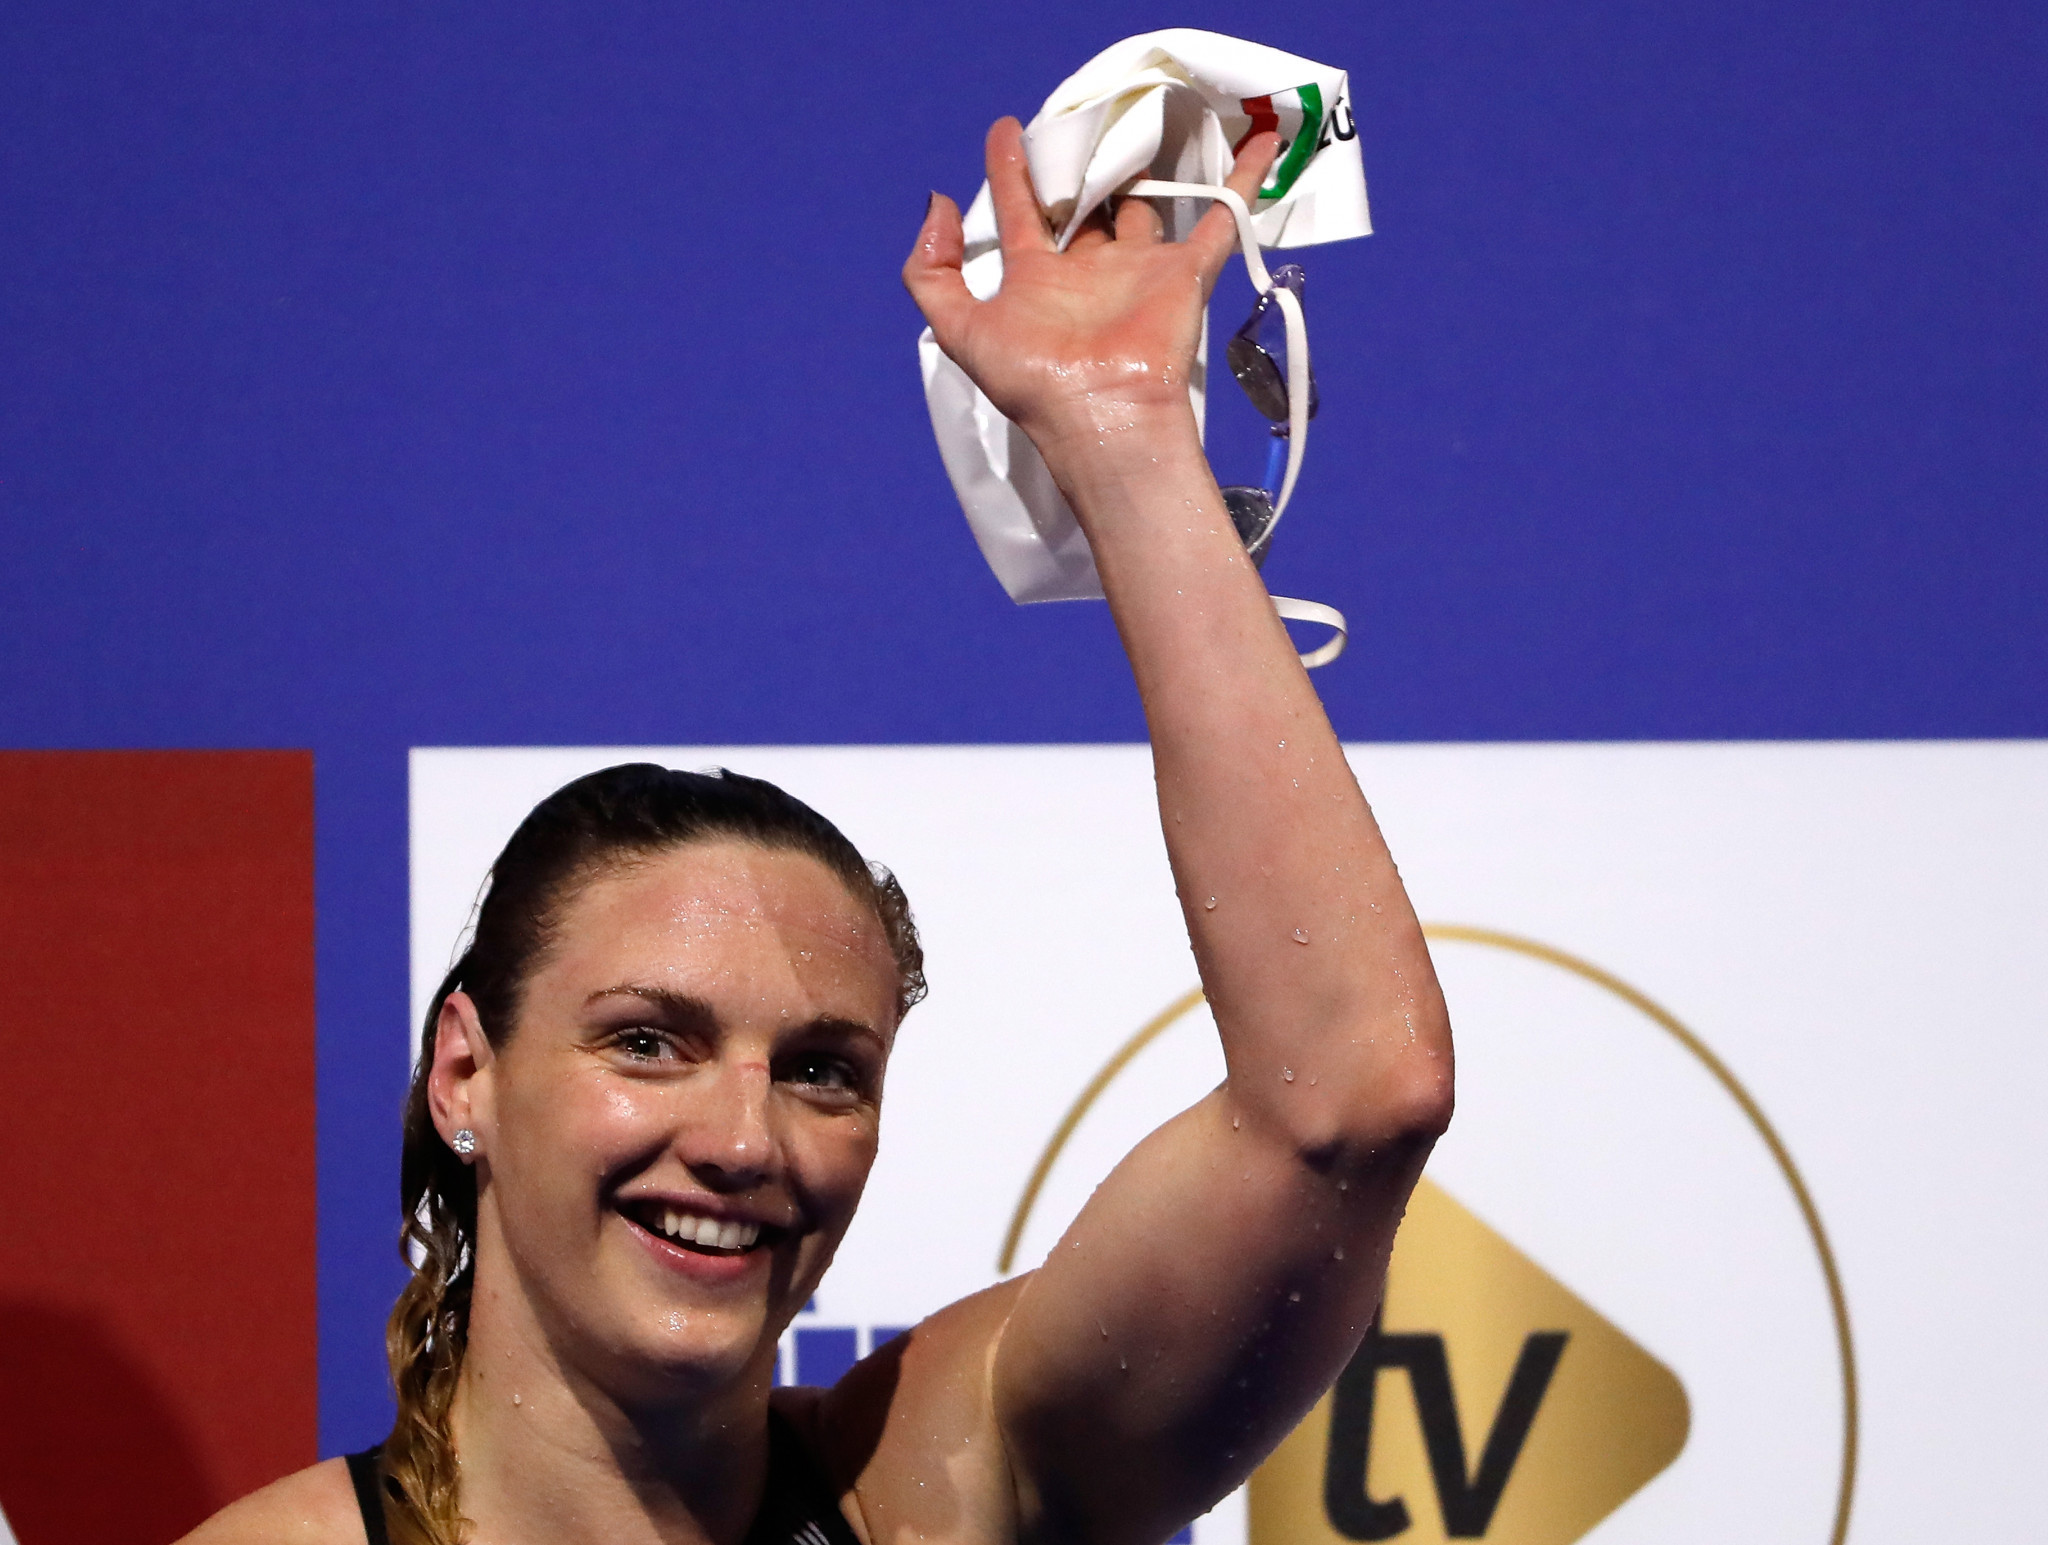 Hungary's triple Olympic champion Katinka Hosszú wants the newly formed International Swimming League to help promote swimmers so they can make a living from the sport @Getty Images